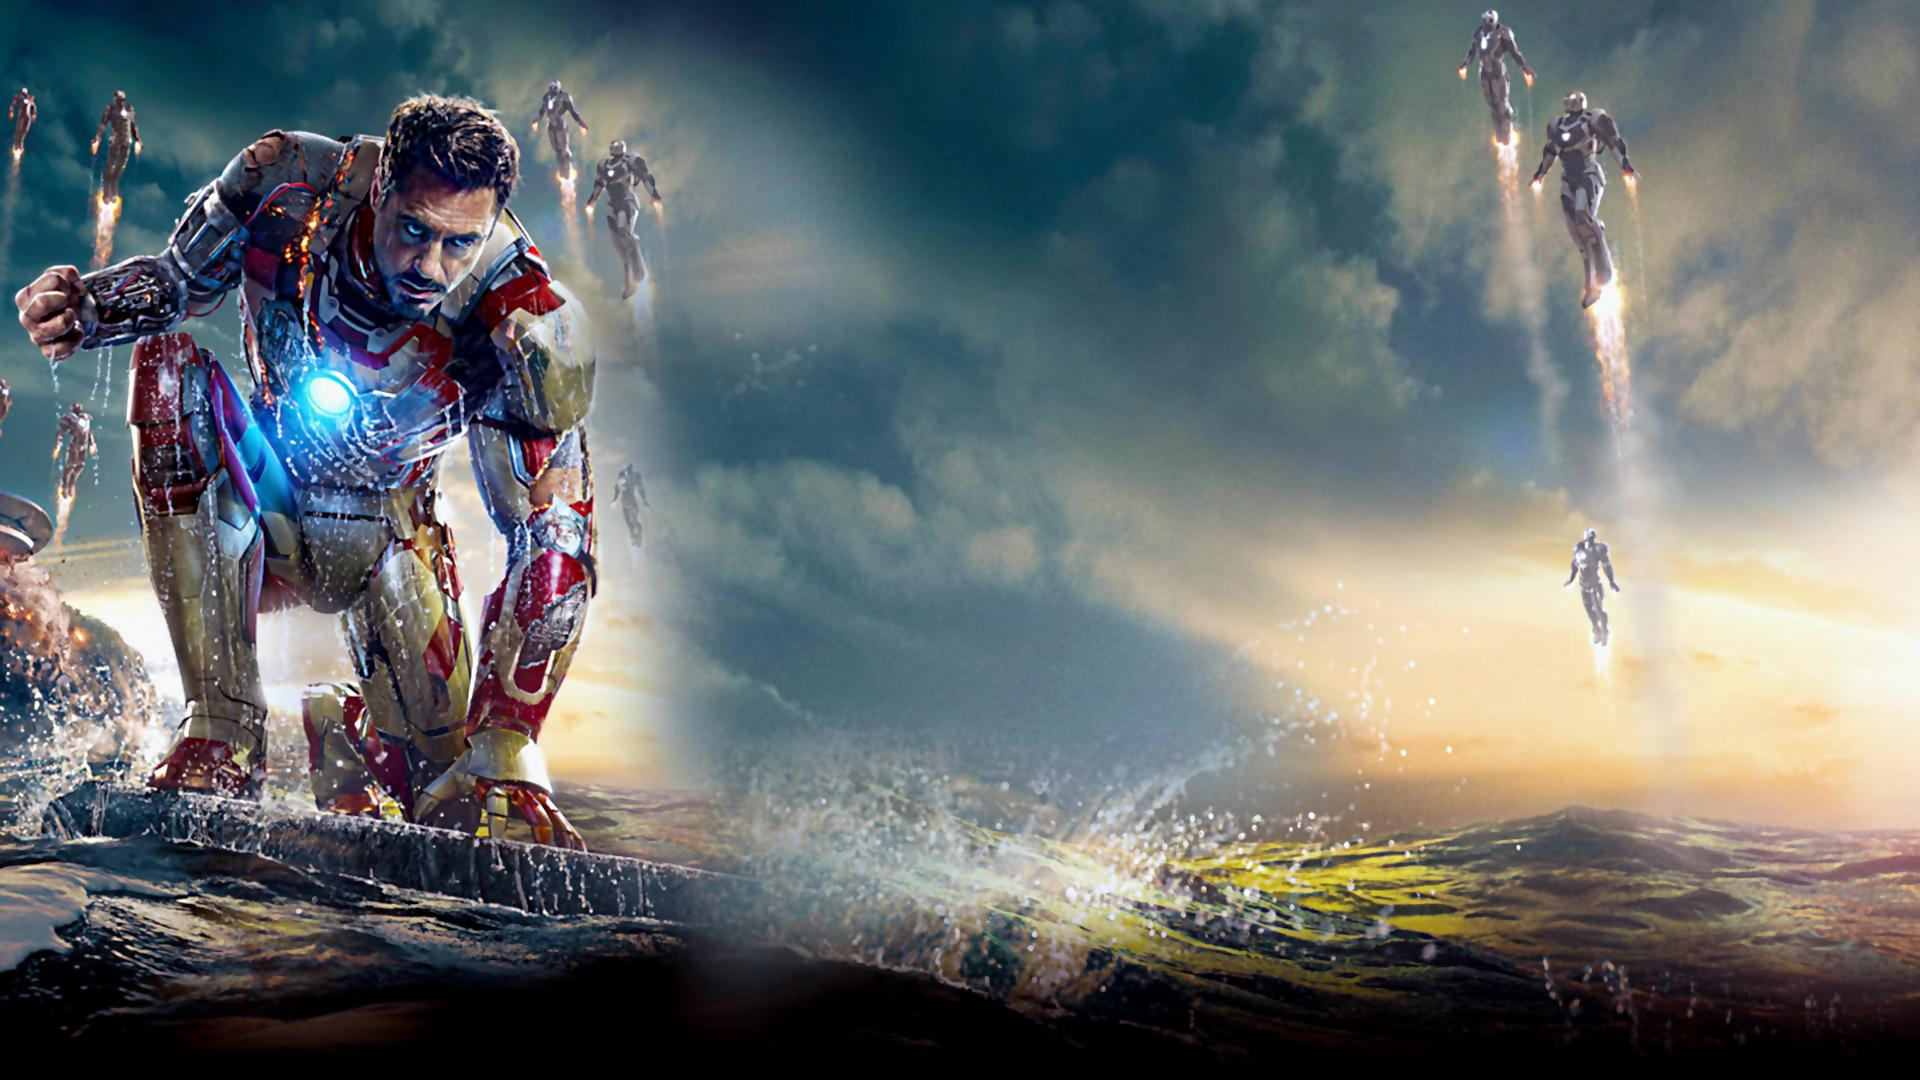 iron man wallpapers hd free download | pixelstalk